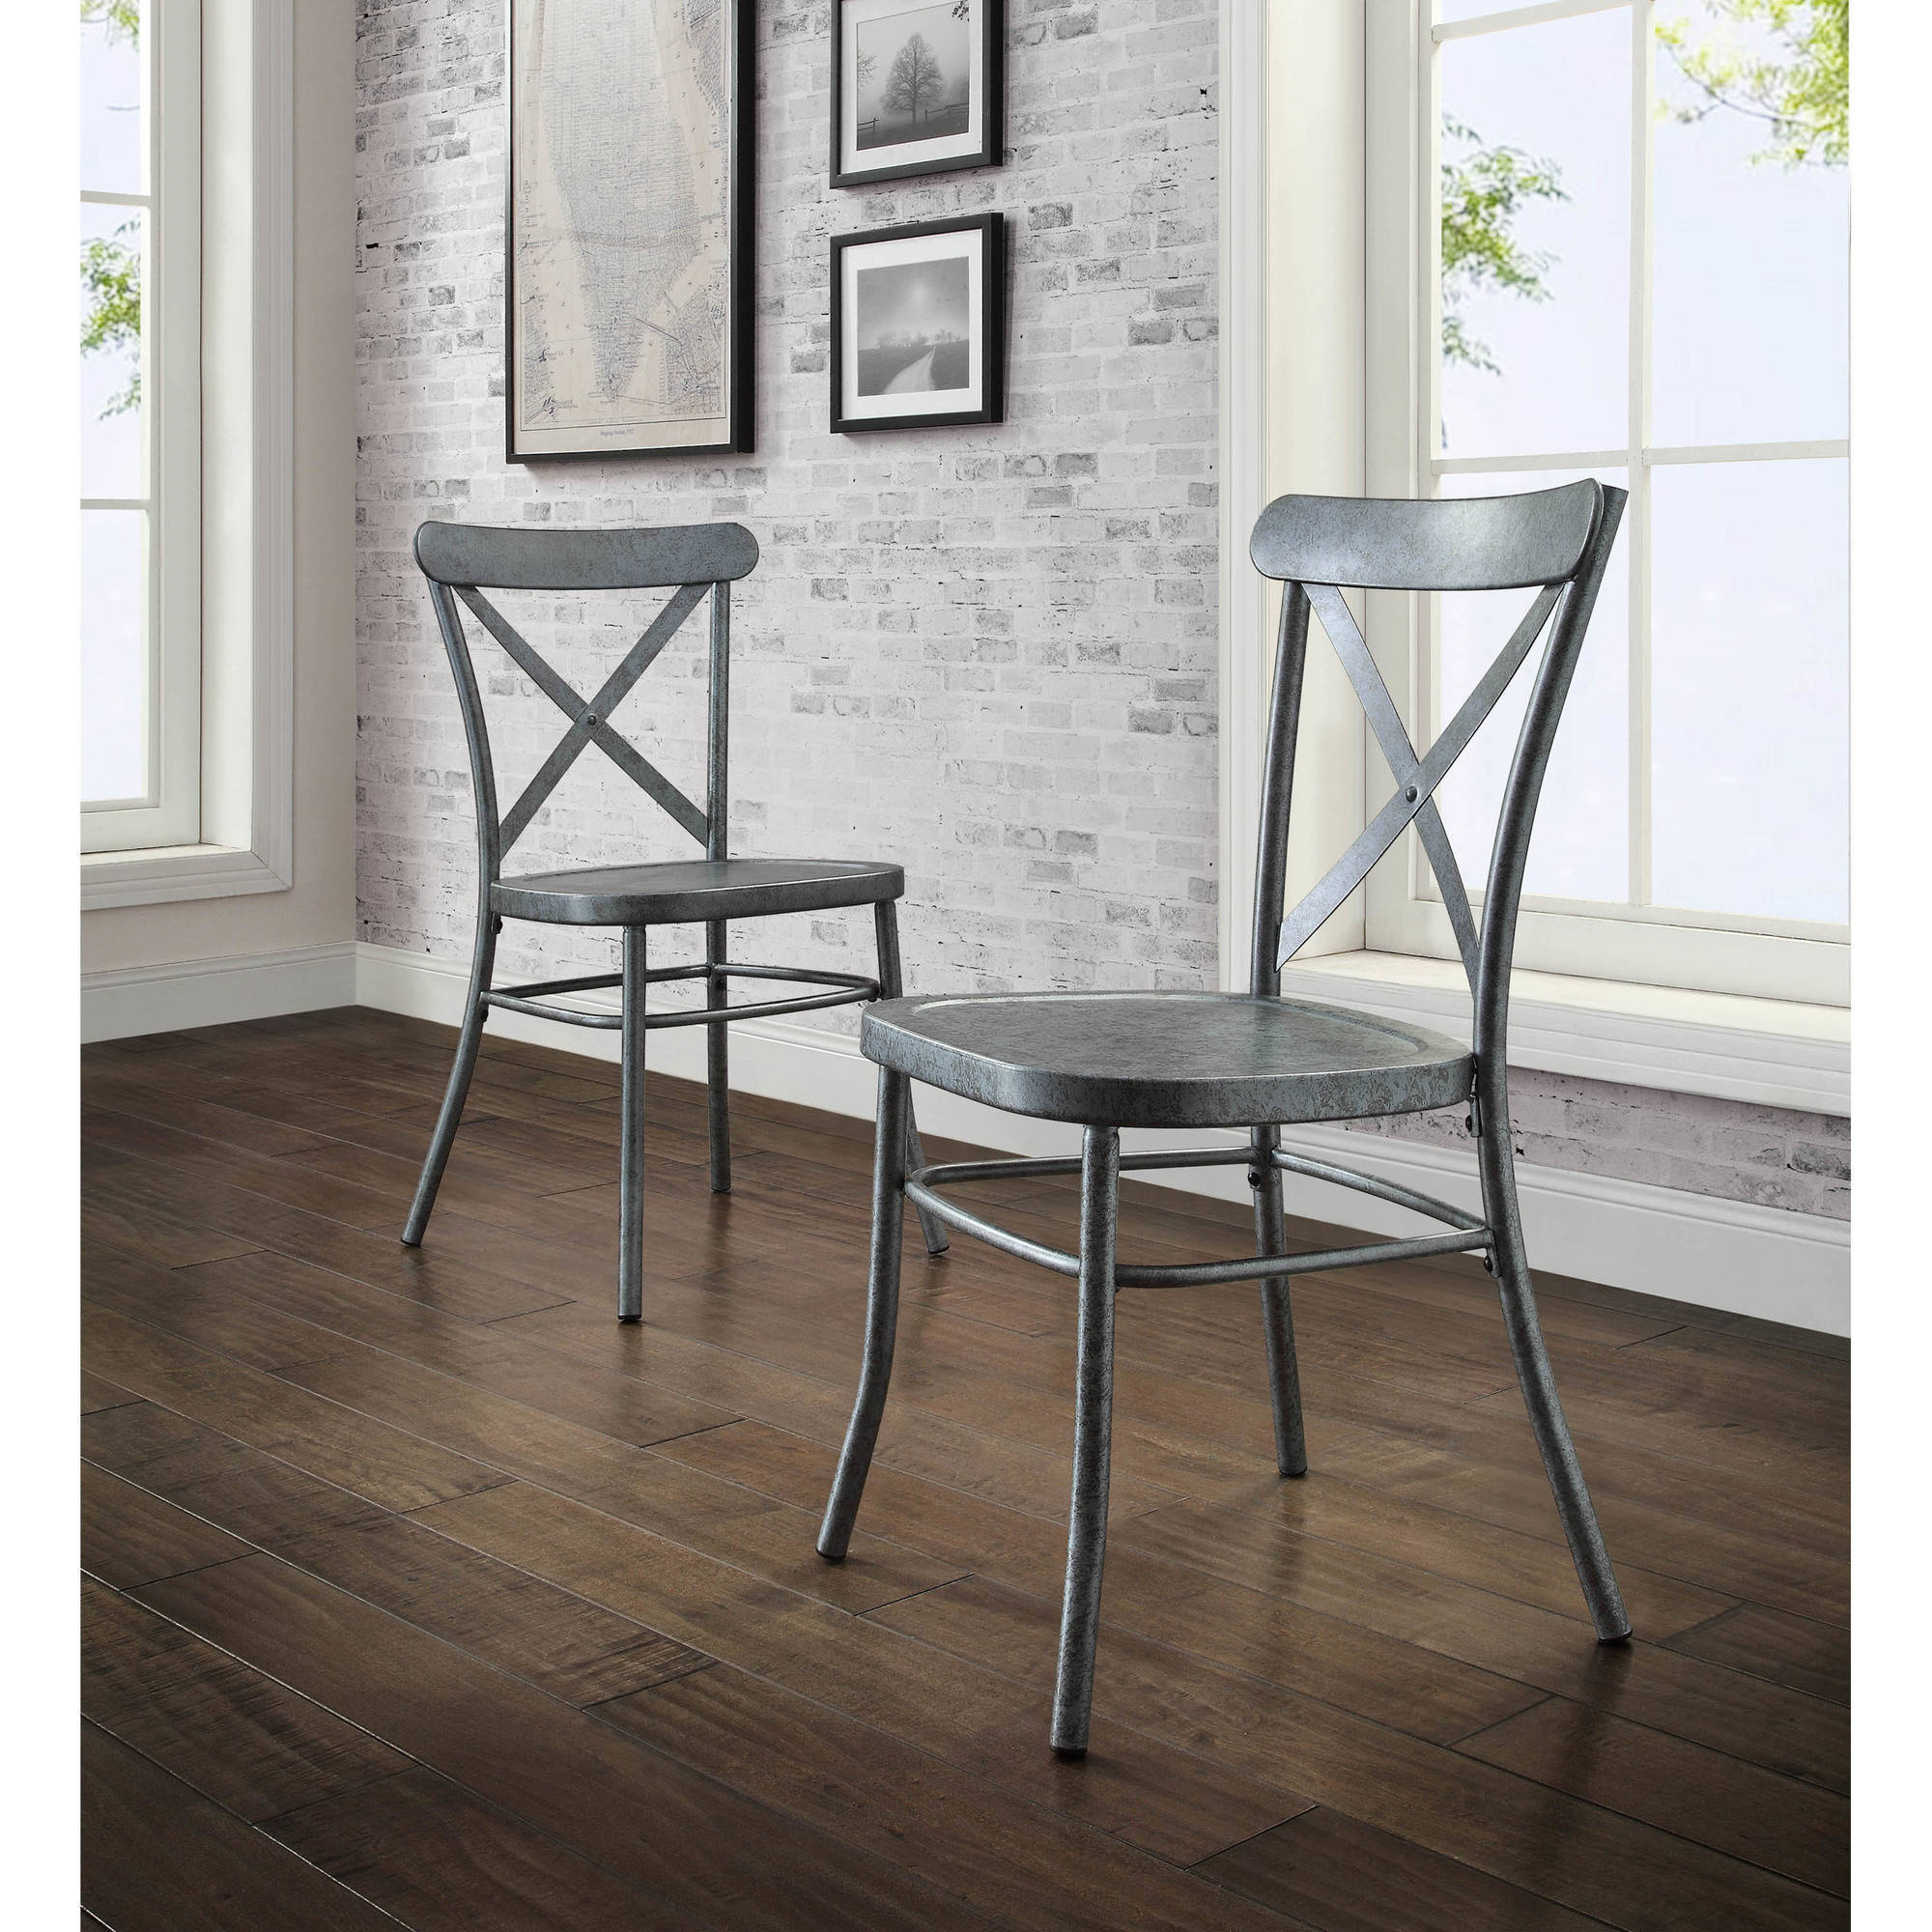 Better Homes And Gardens Collin Silver Dining Chair, 2 Pack